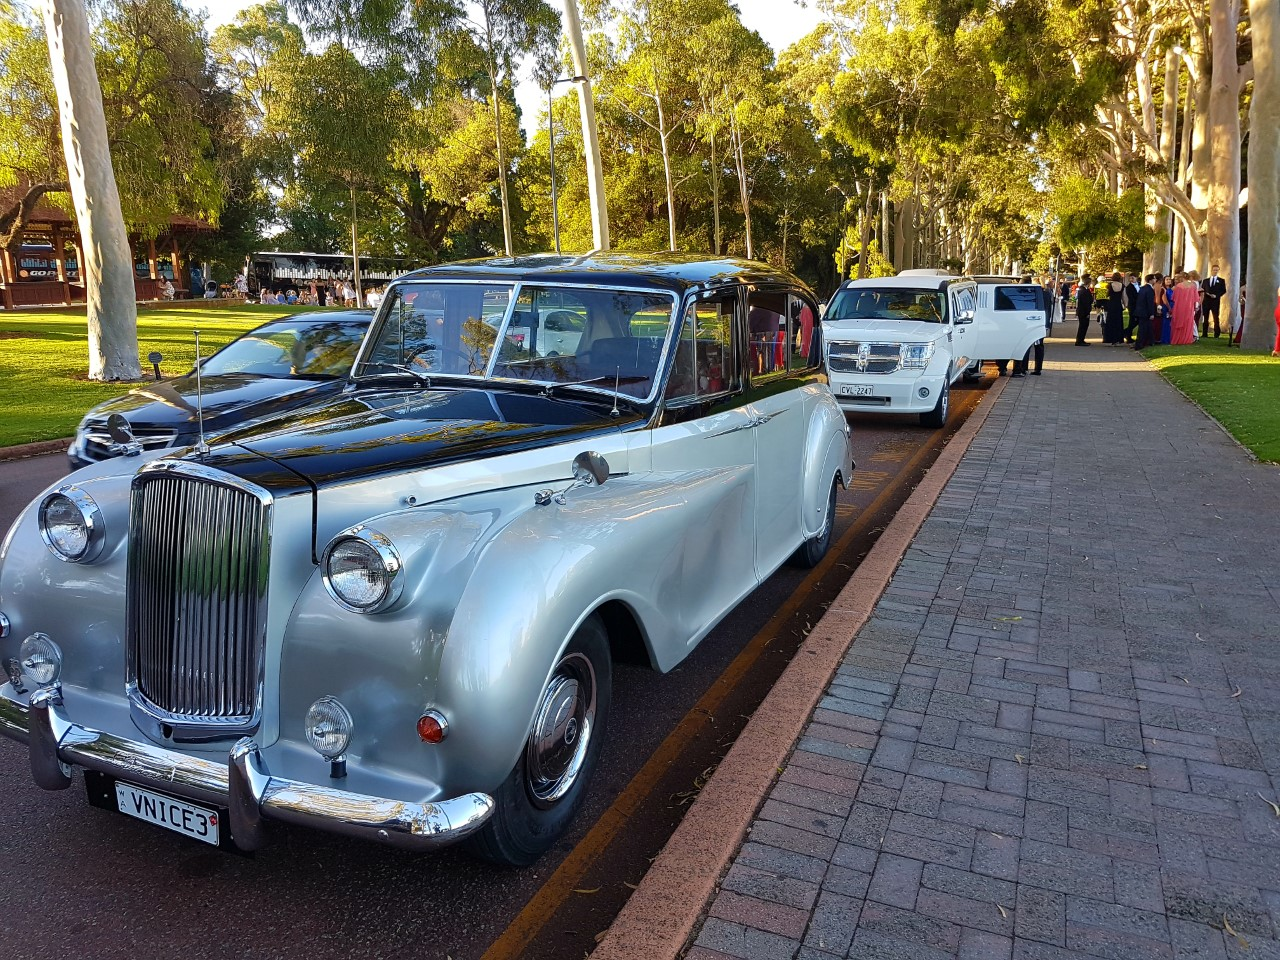 Very Nice Classics Cars & Limousines